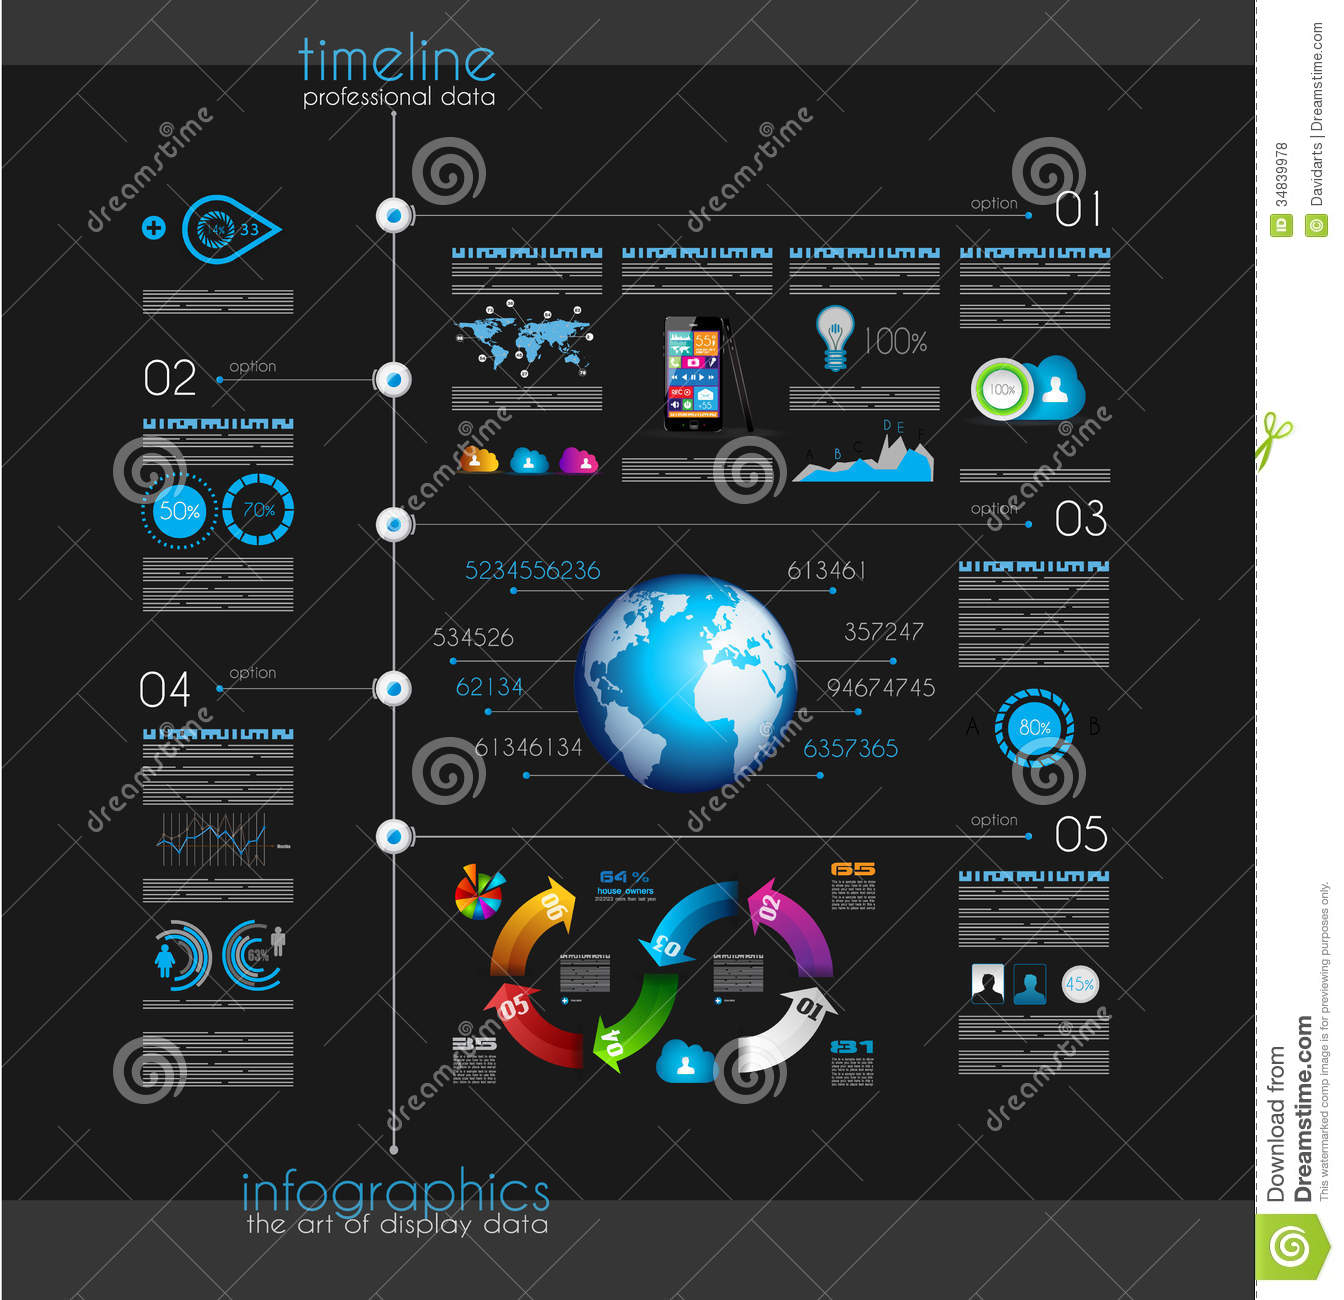 Timeline To Display Your Data With Infographic Elements Royalty ...